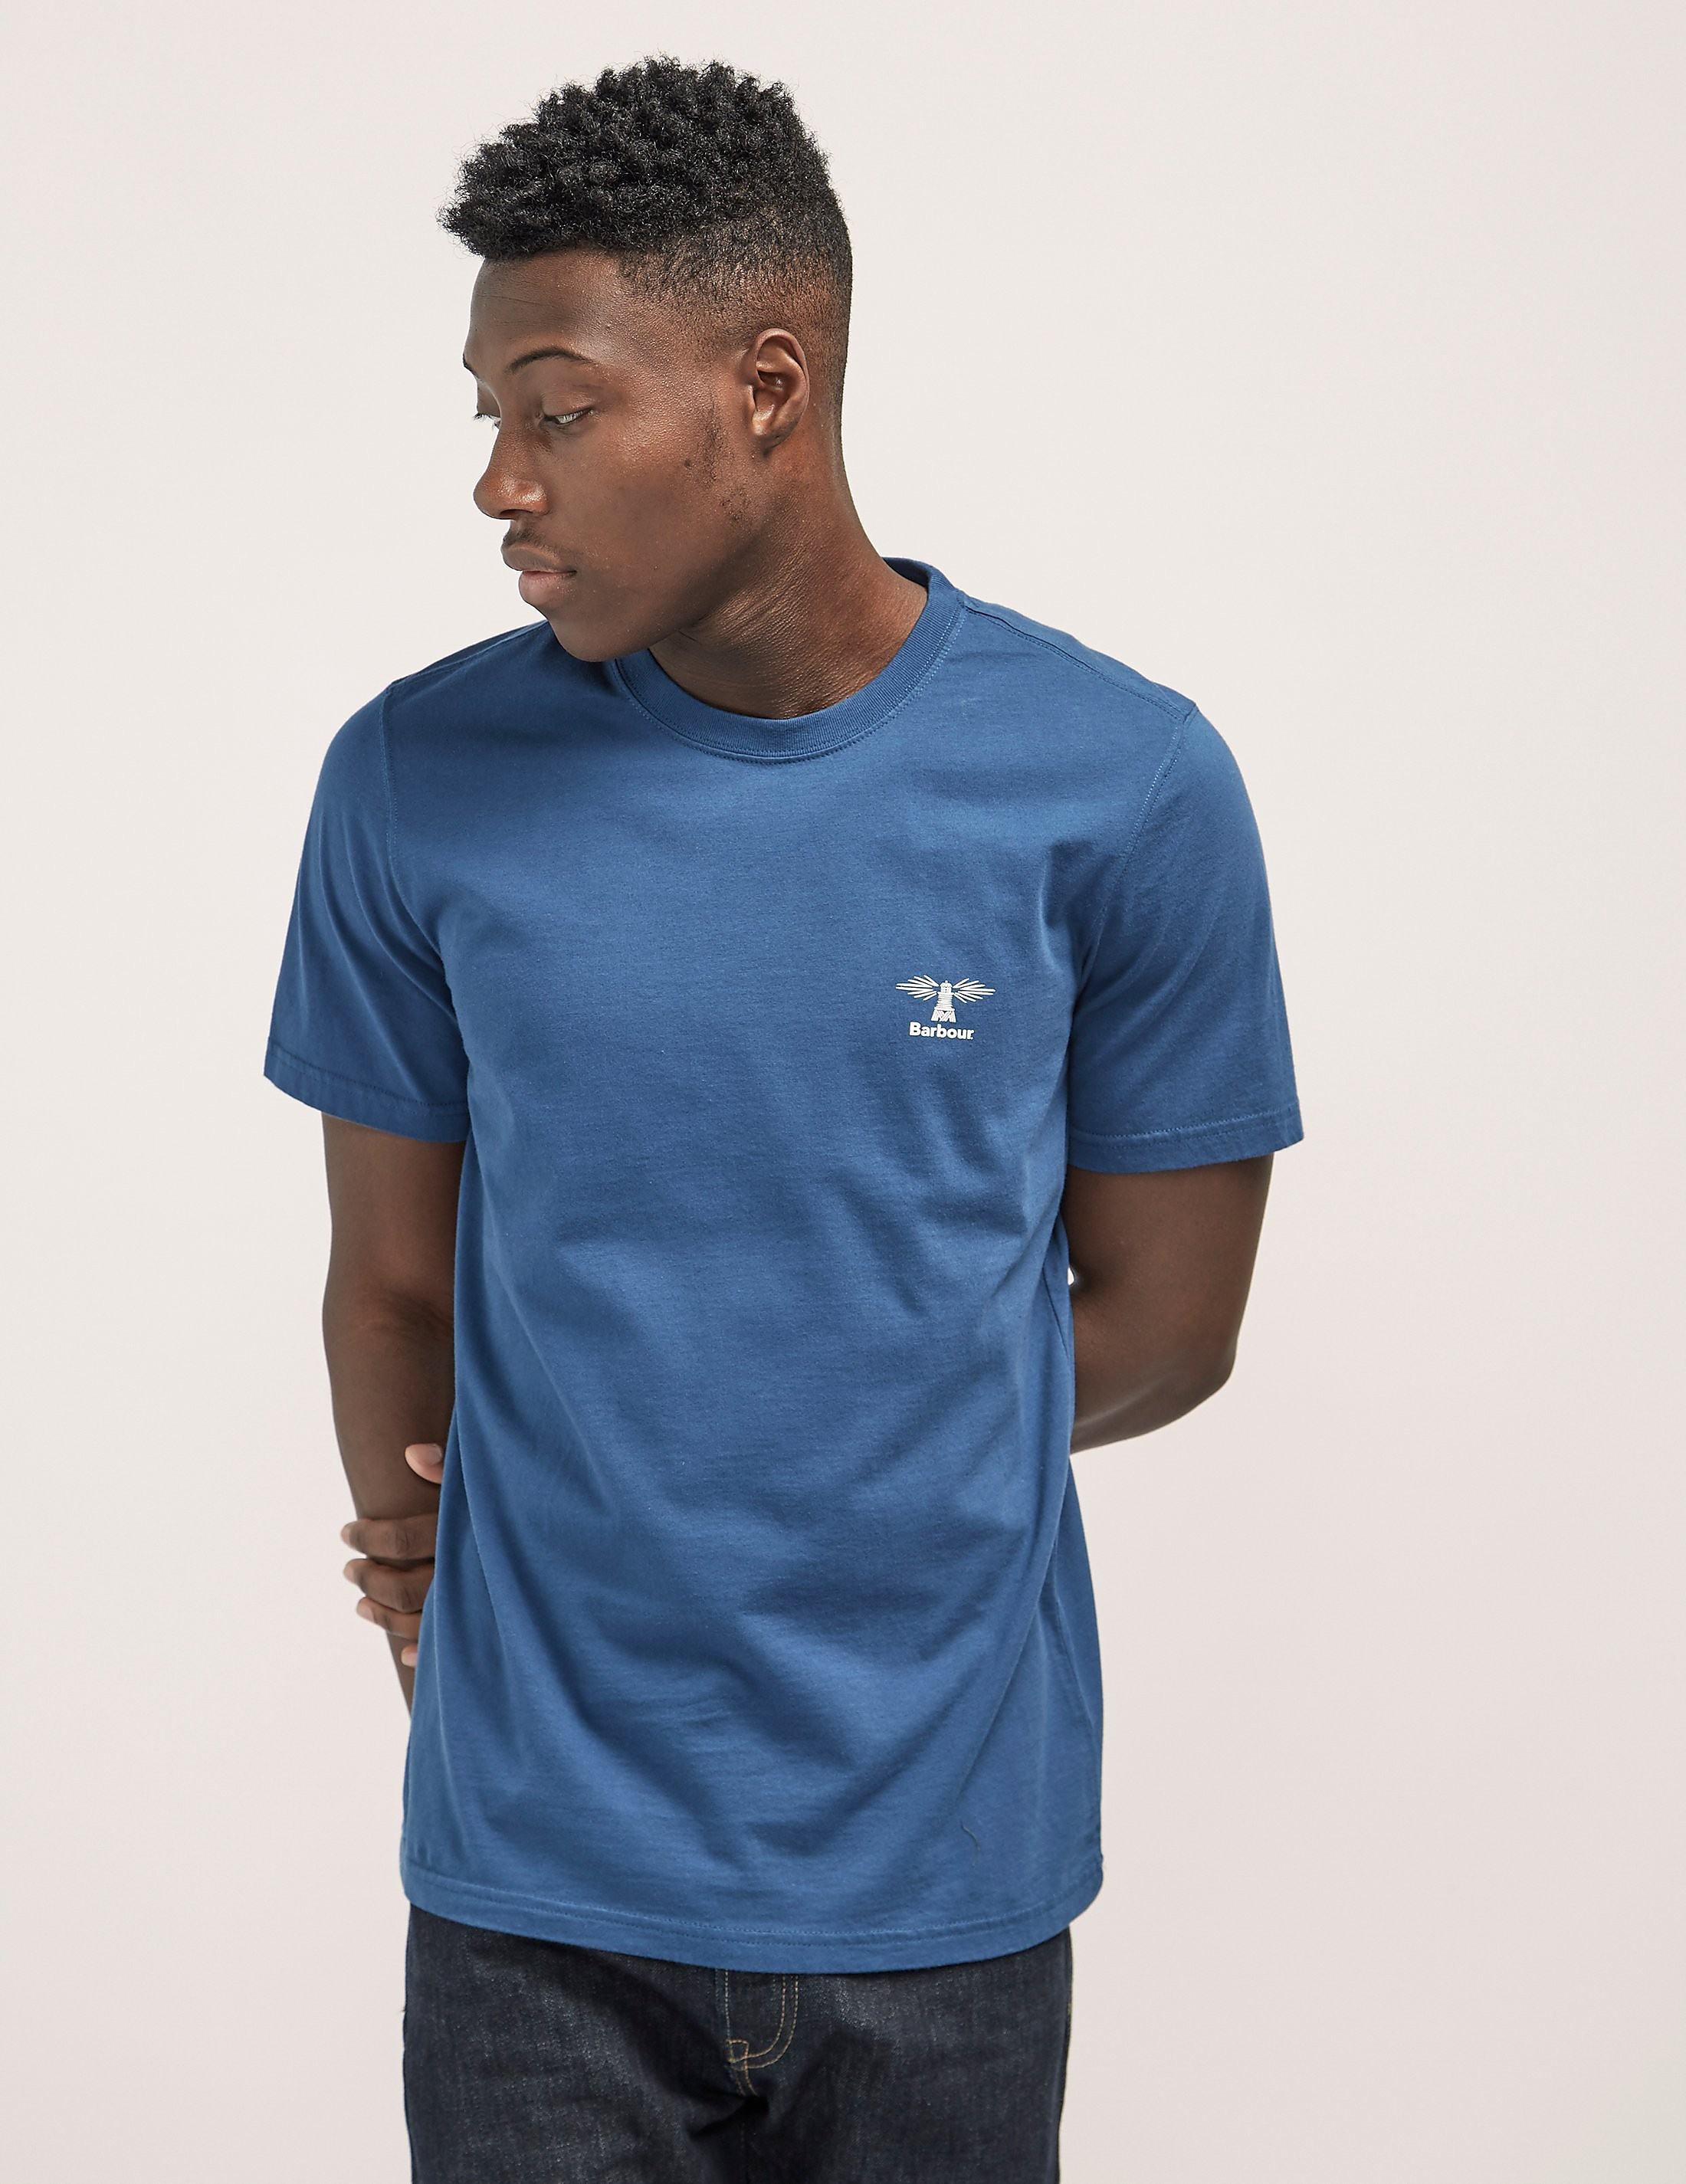 Barbour Sports Short Sleeve T-Shirt